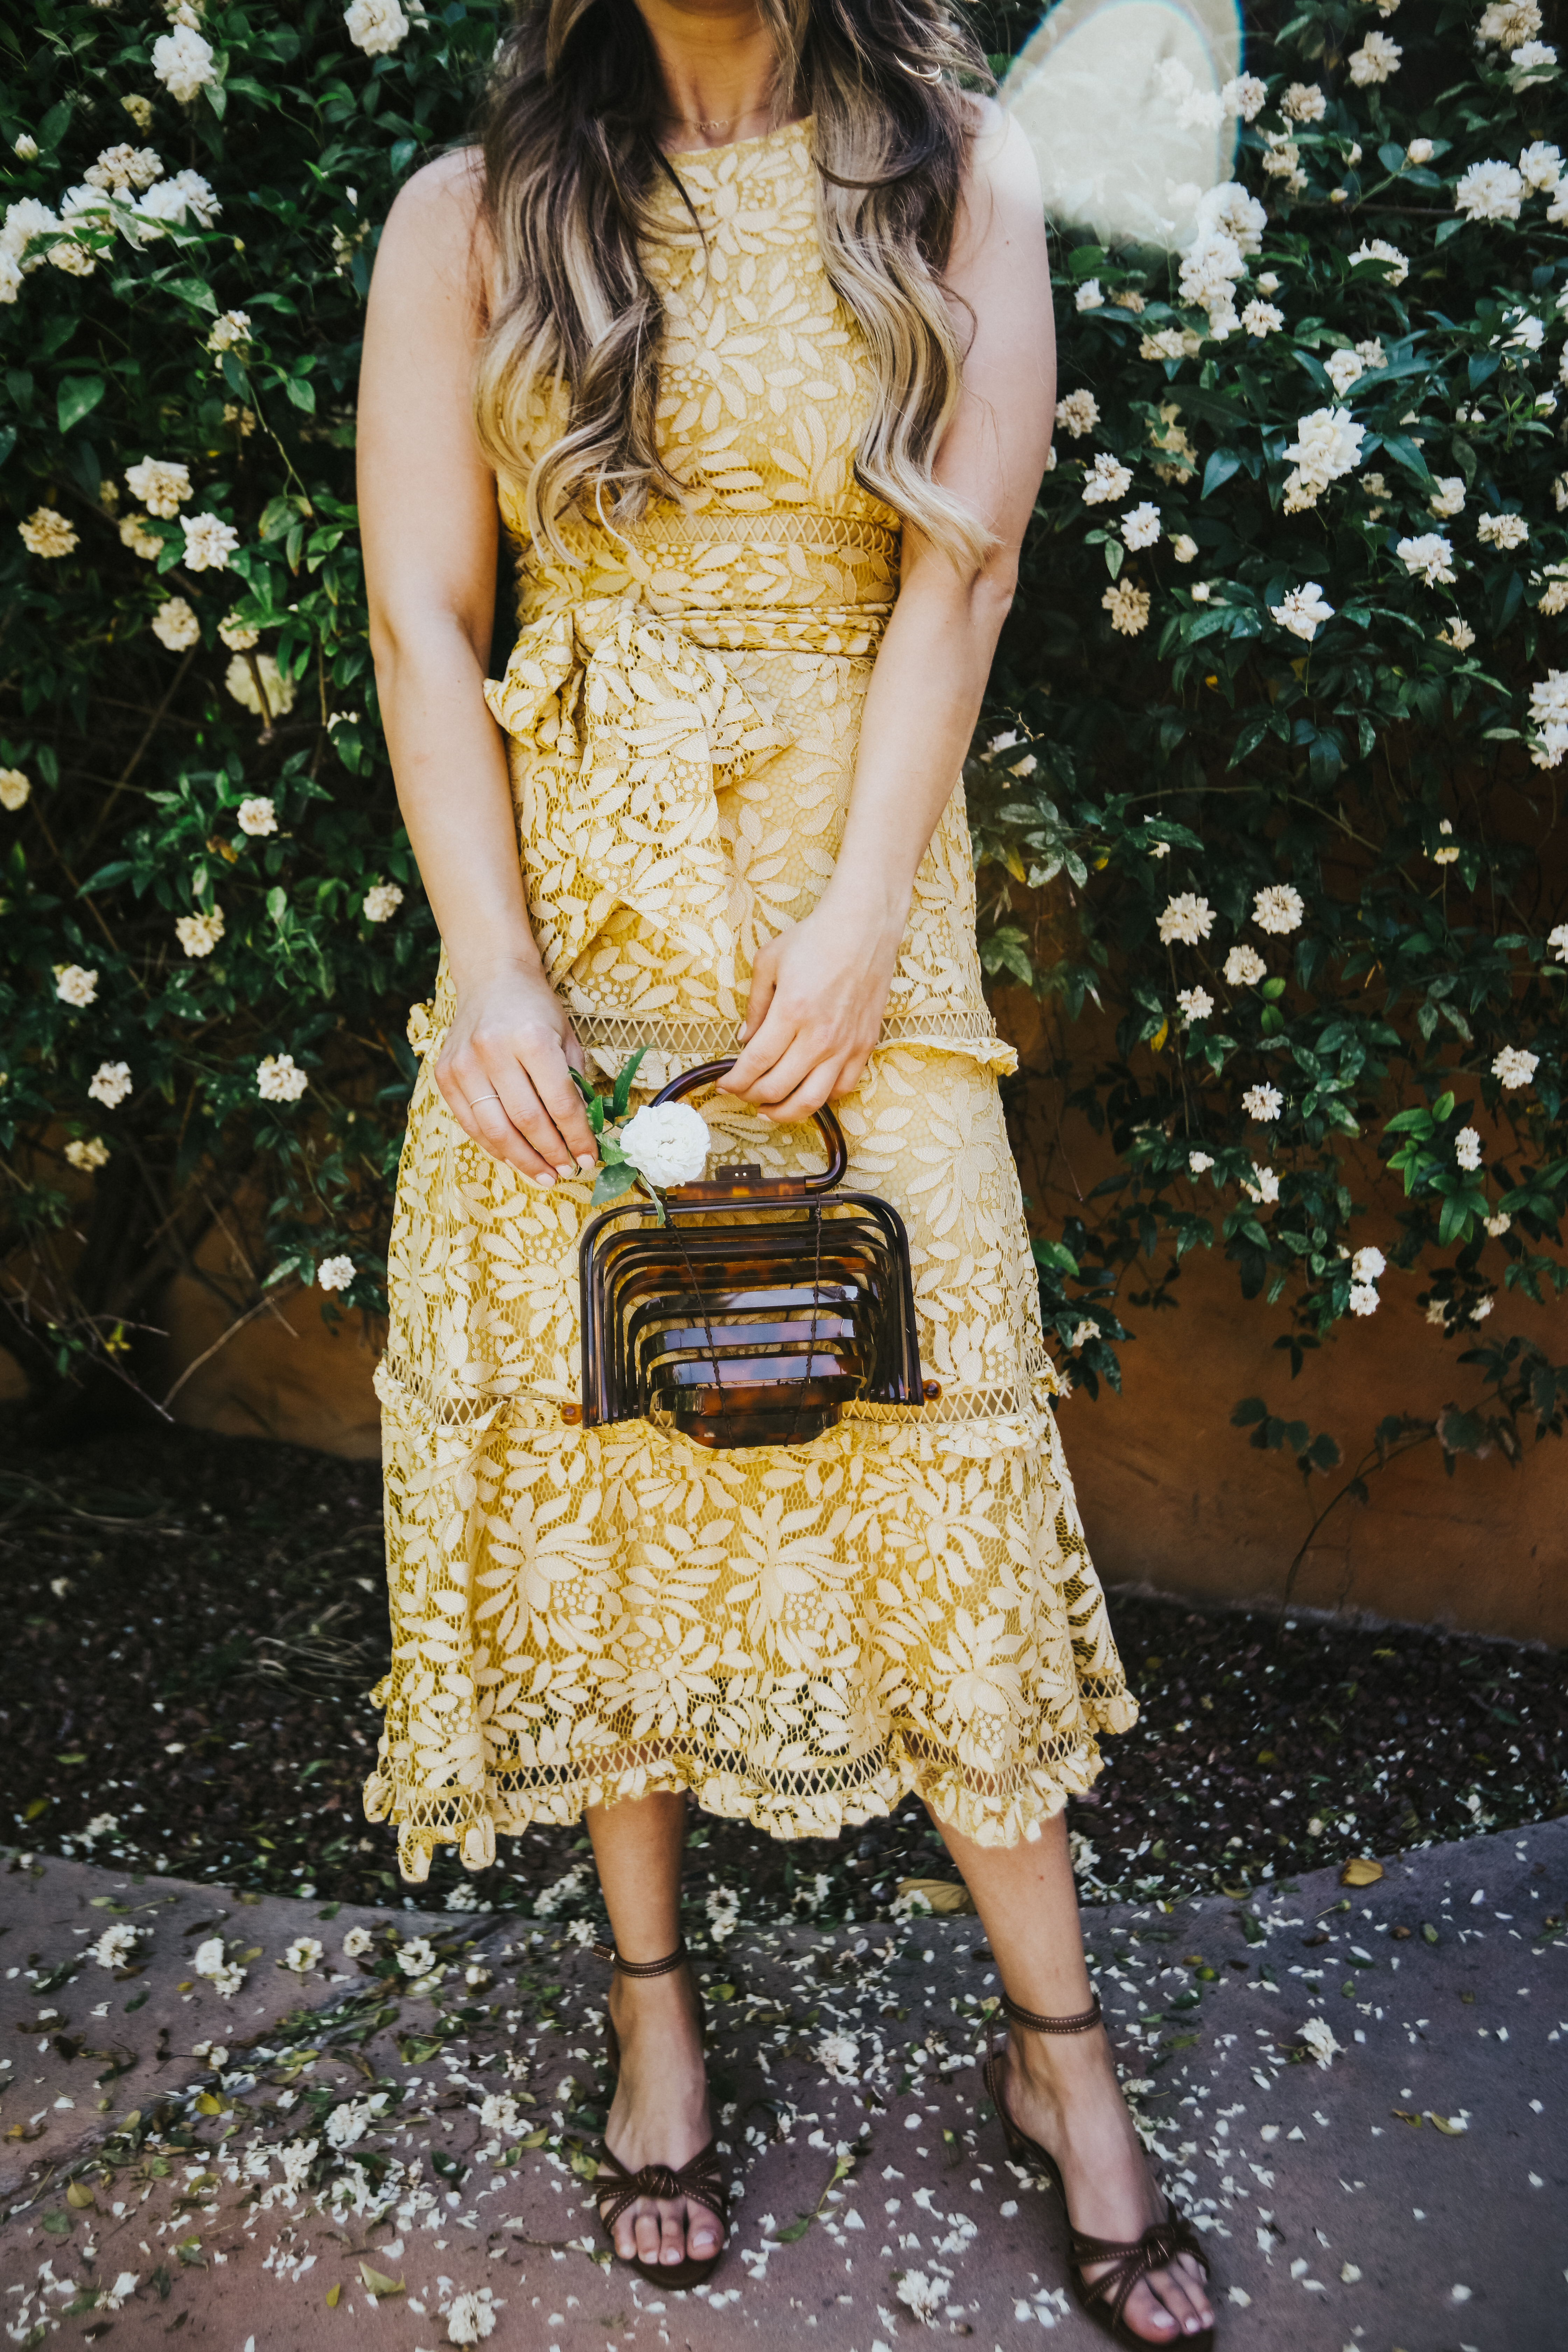 Becca Robson is wearing a preppy yellow lace dress